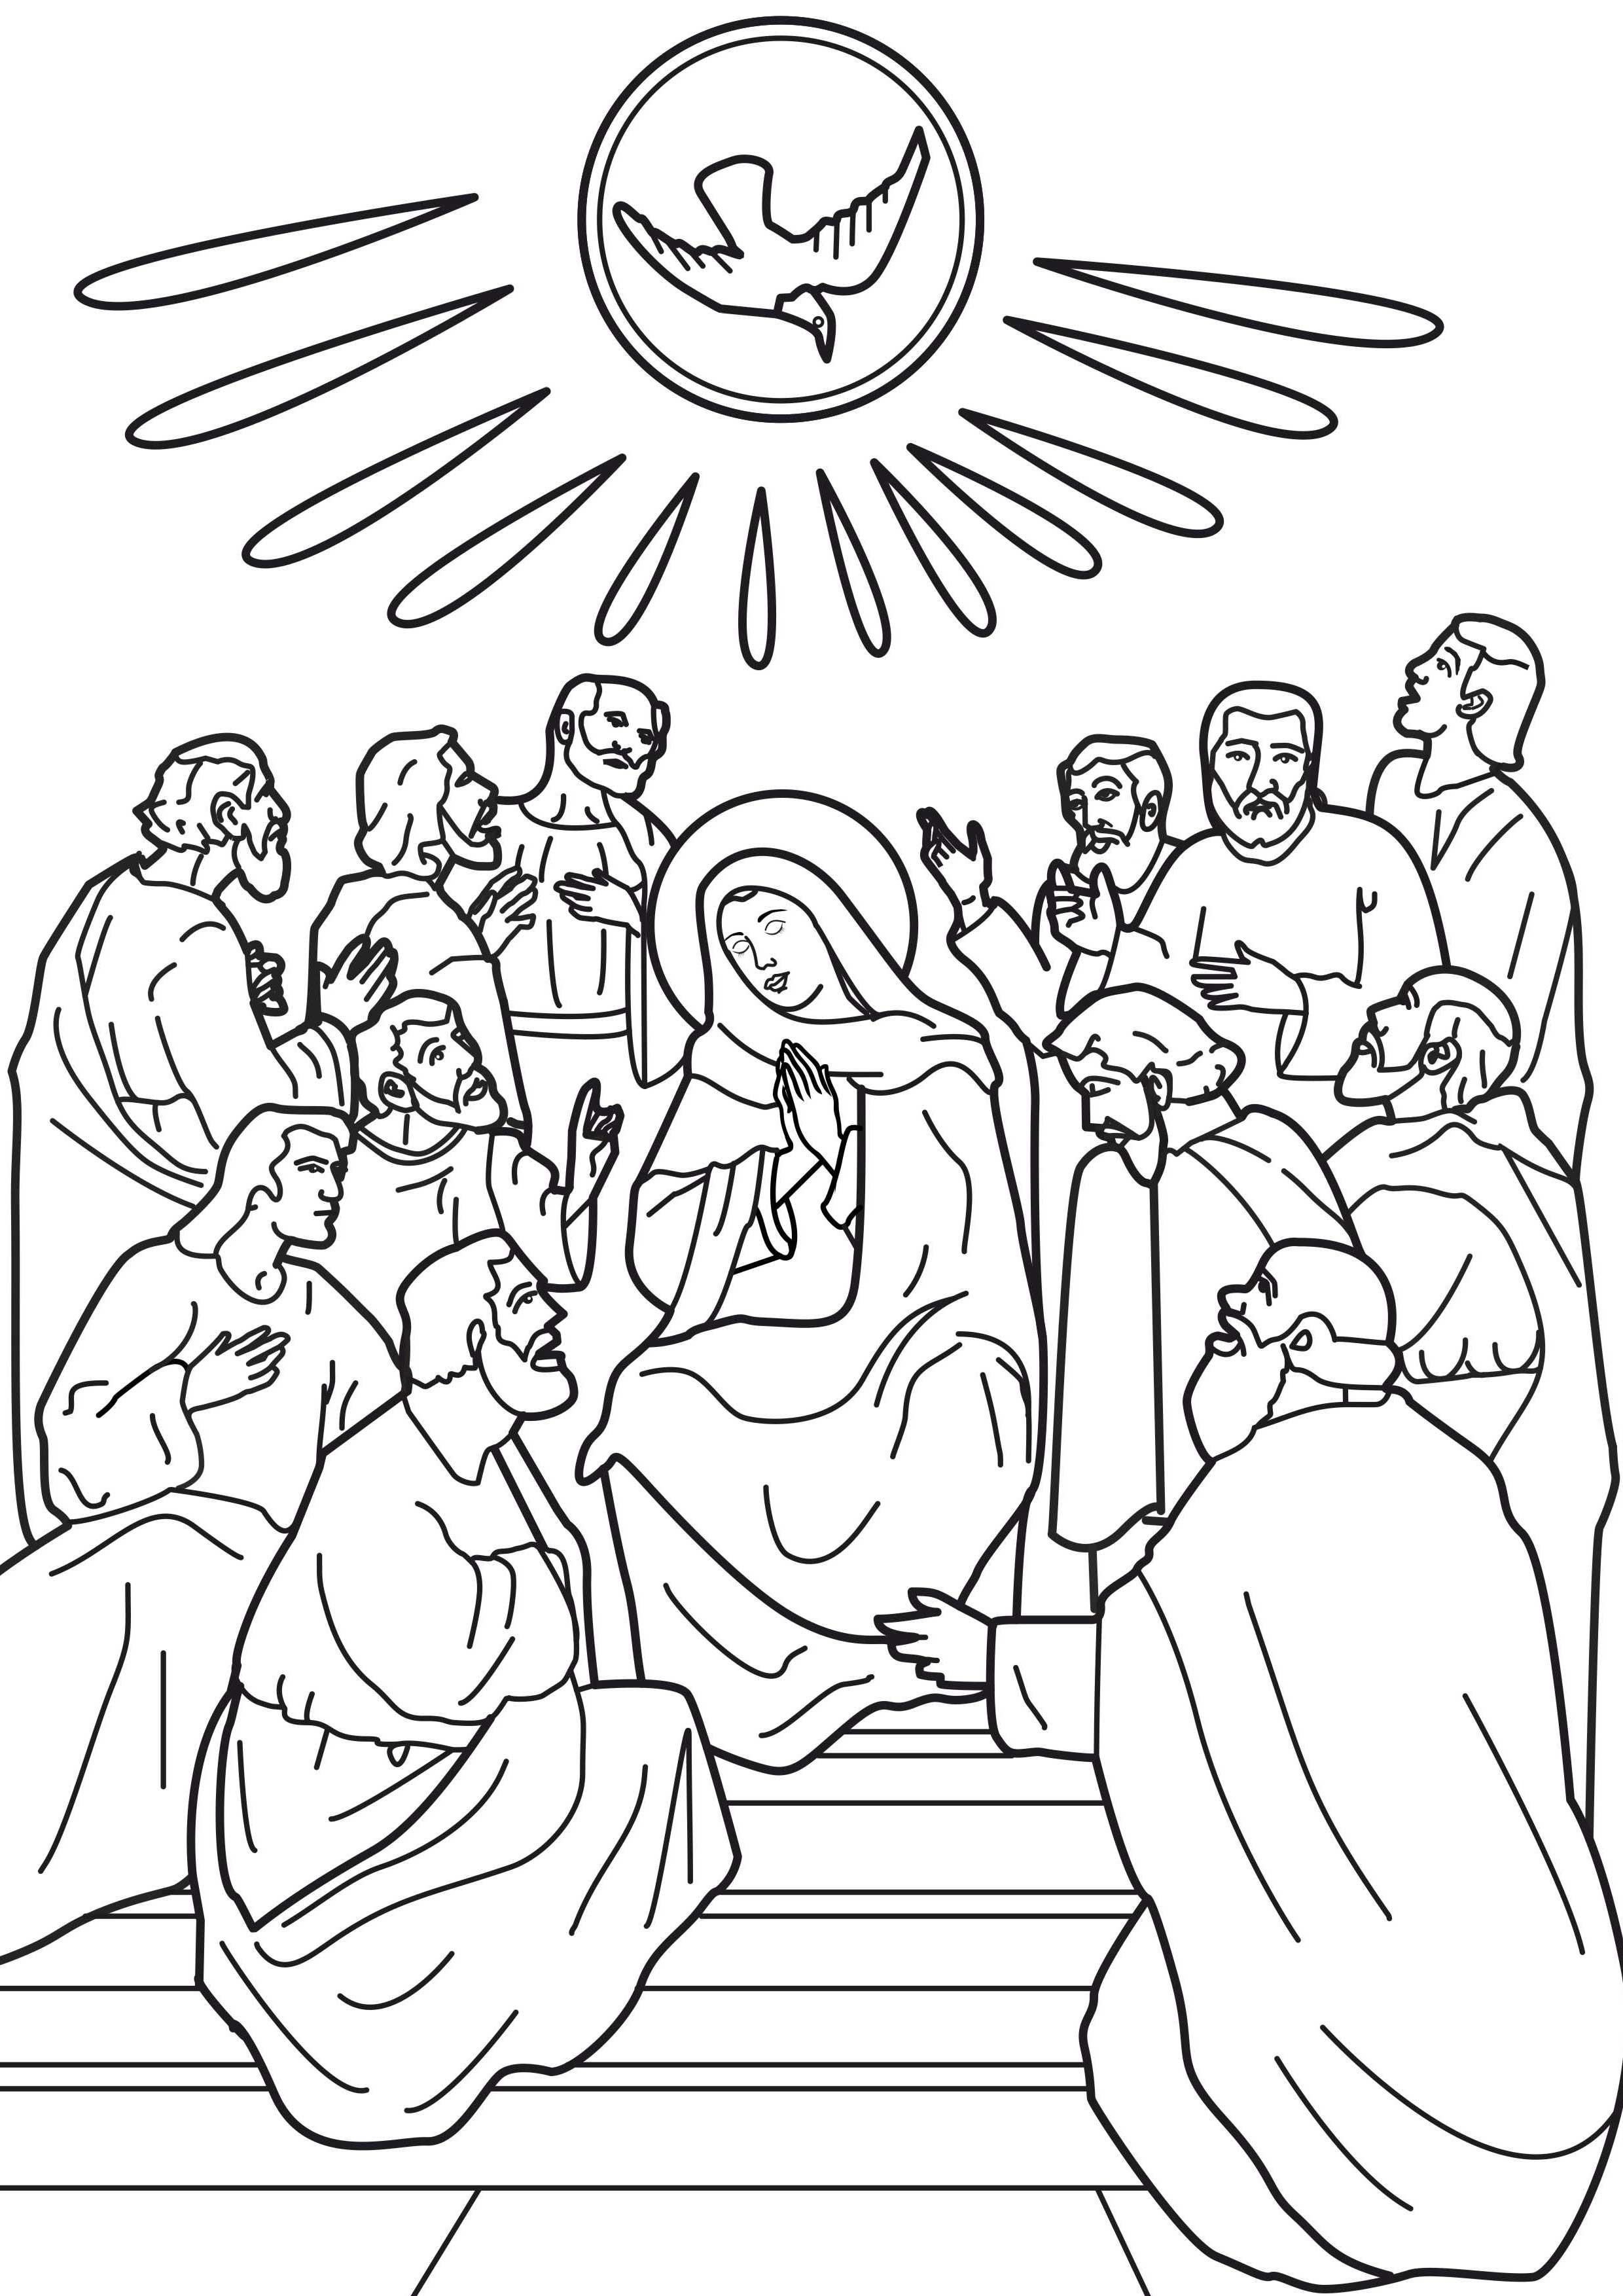 2480x3508 Day Of Pentecost Coloring Page Free Printable Pages